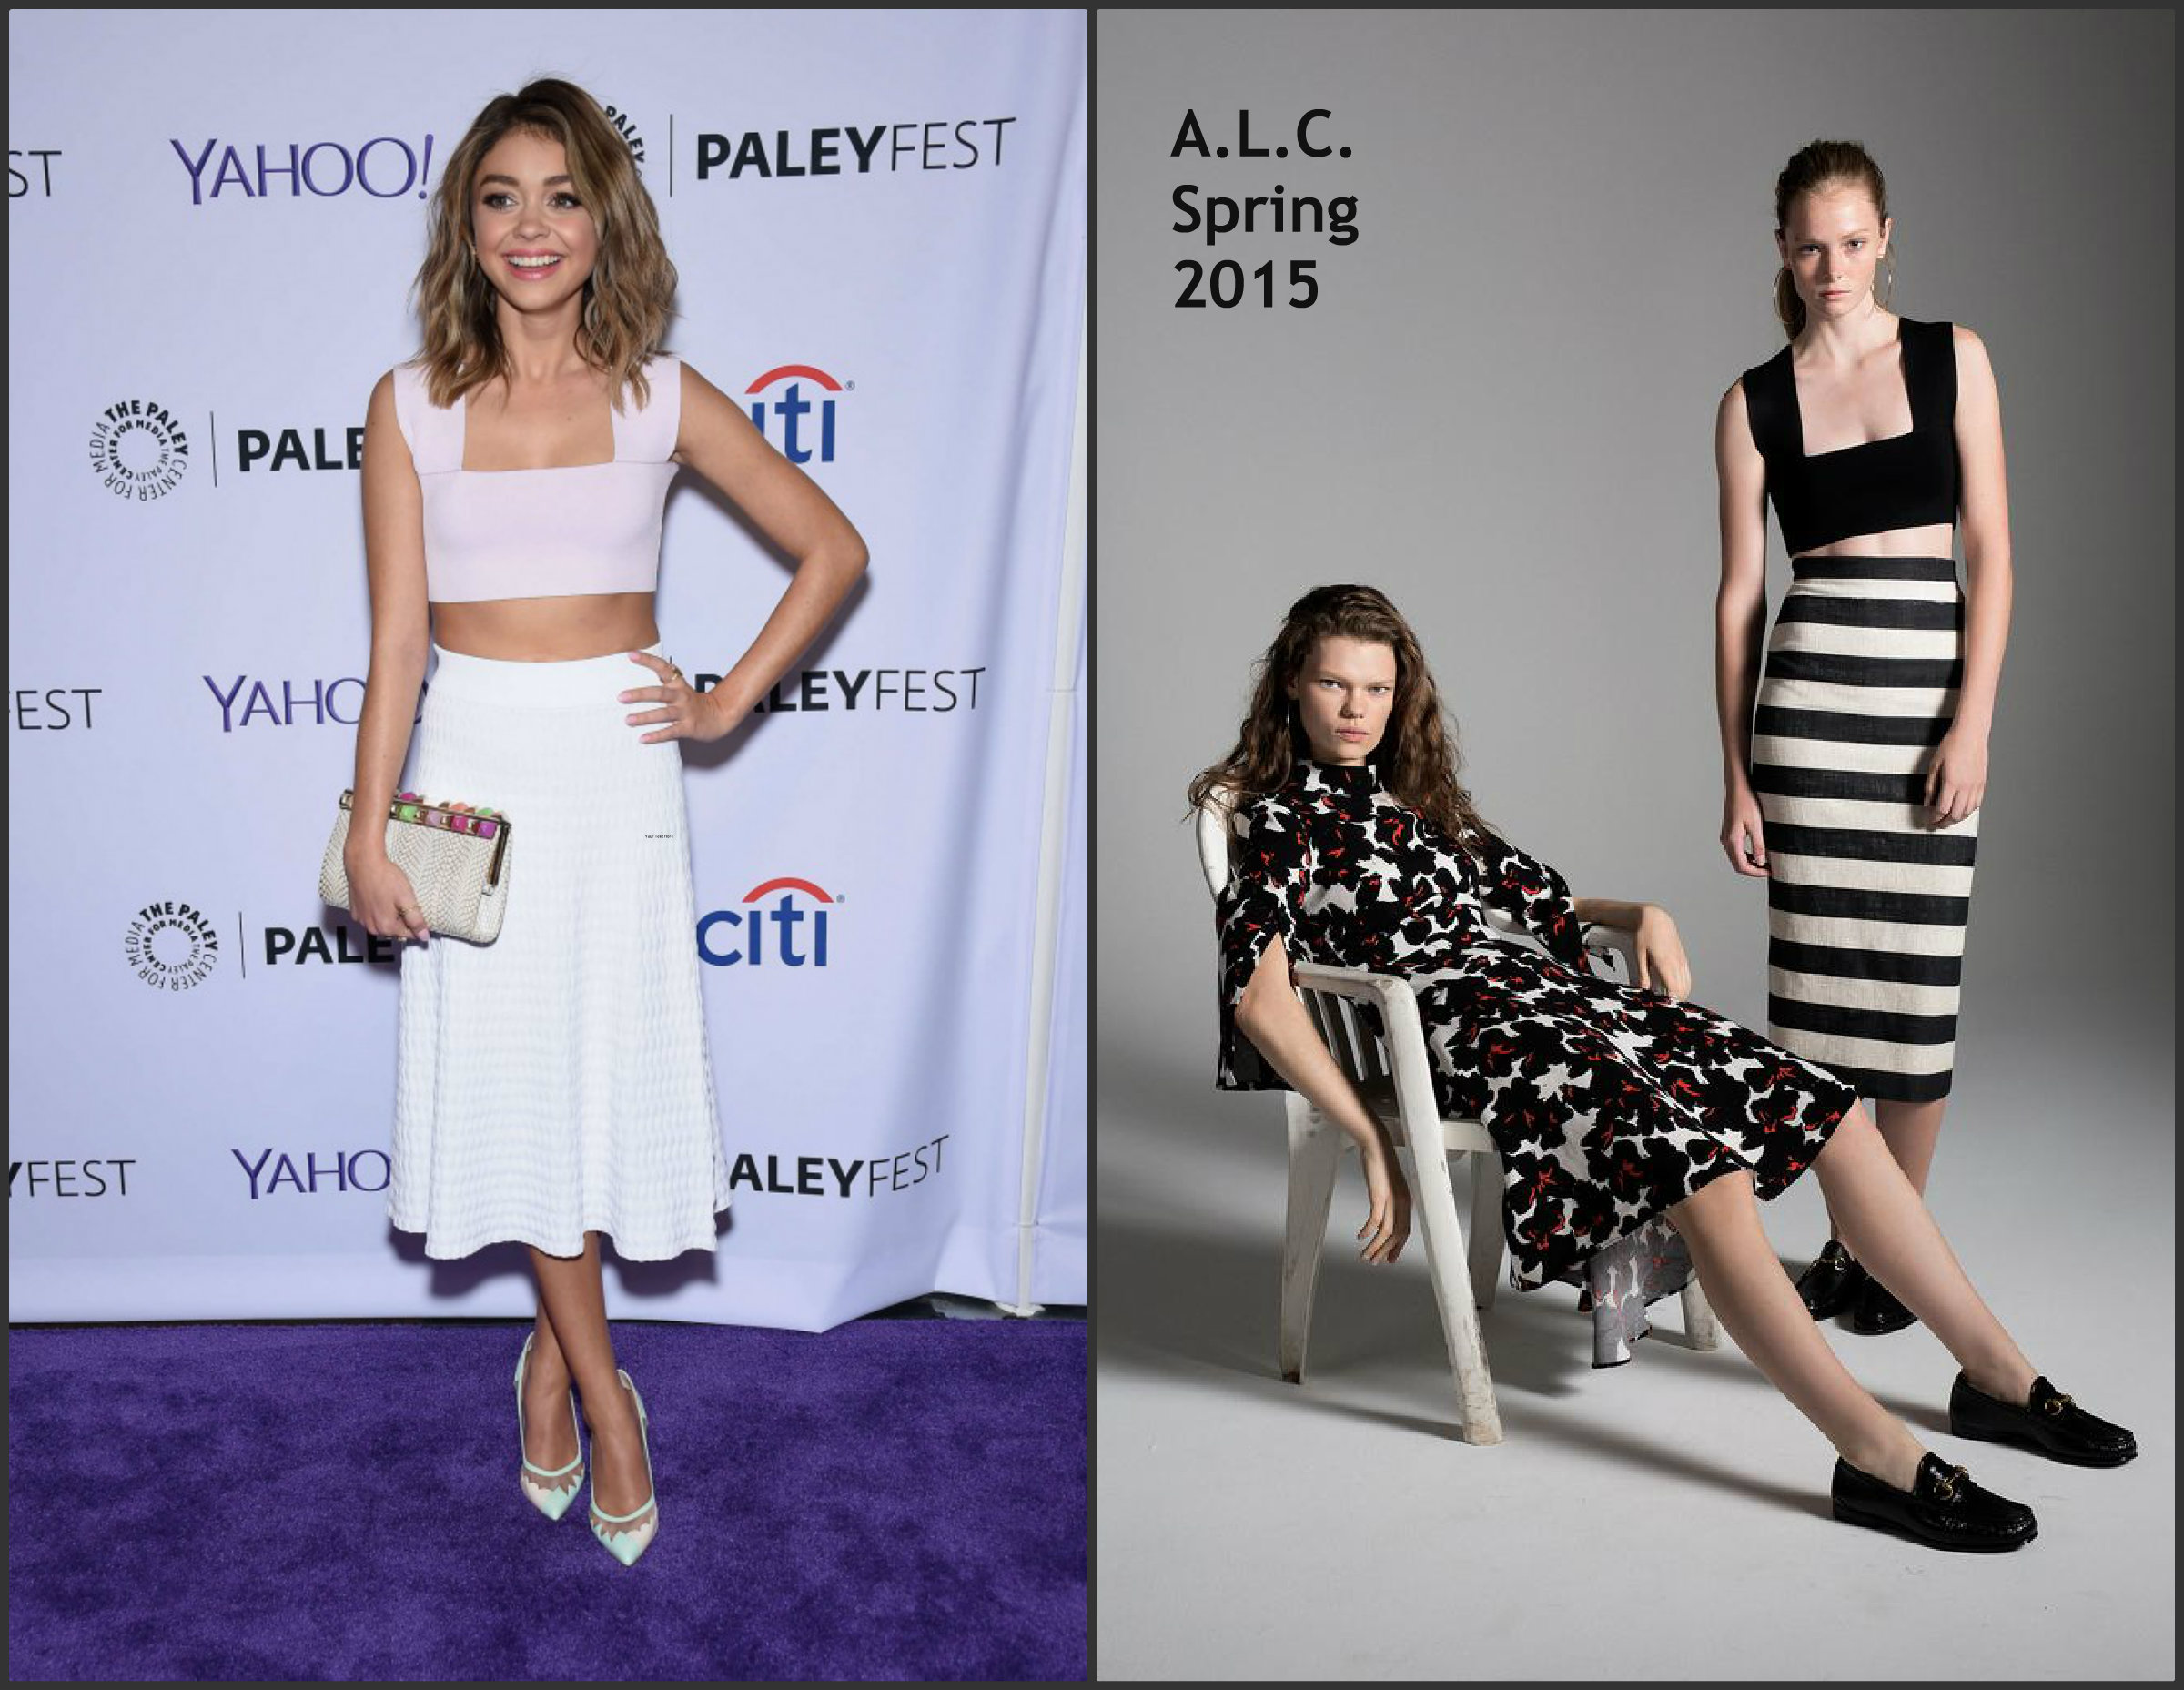 Sarah-Hyland-In-A-L-C-at-Pawleyfest-LA-Presents-Modern-Family